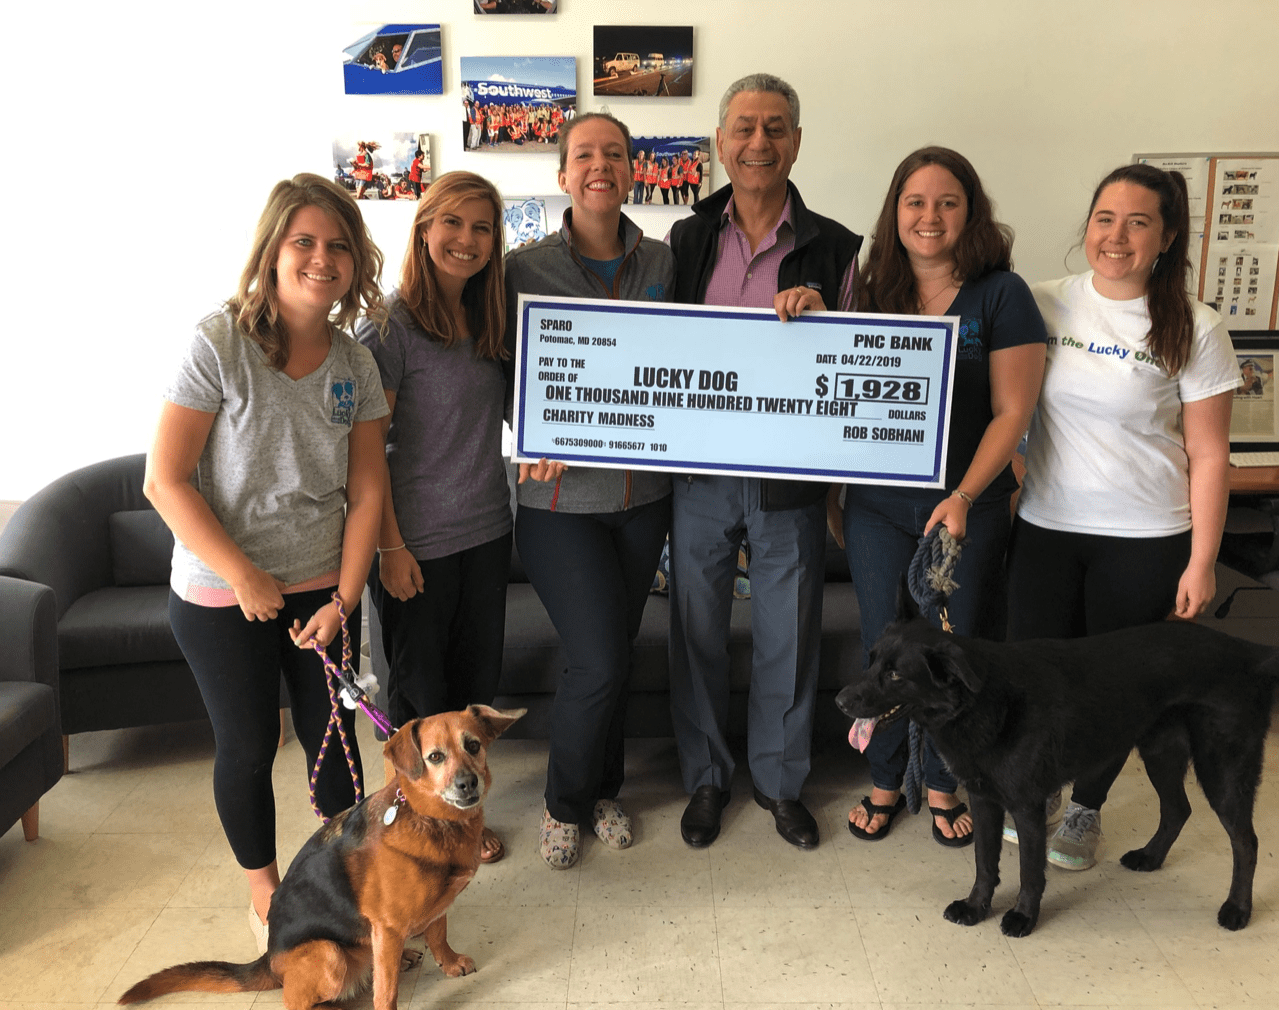 Sparo CEO Rob Sobhani with the team from Lucky Dog Animal Rescue - 2nd place winners in the first Sparo Charity Madness.